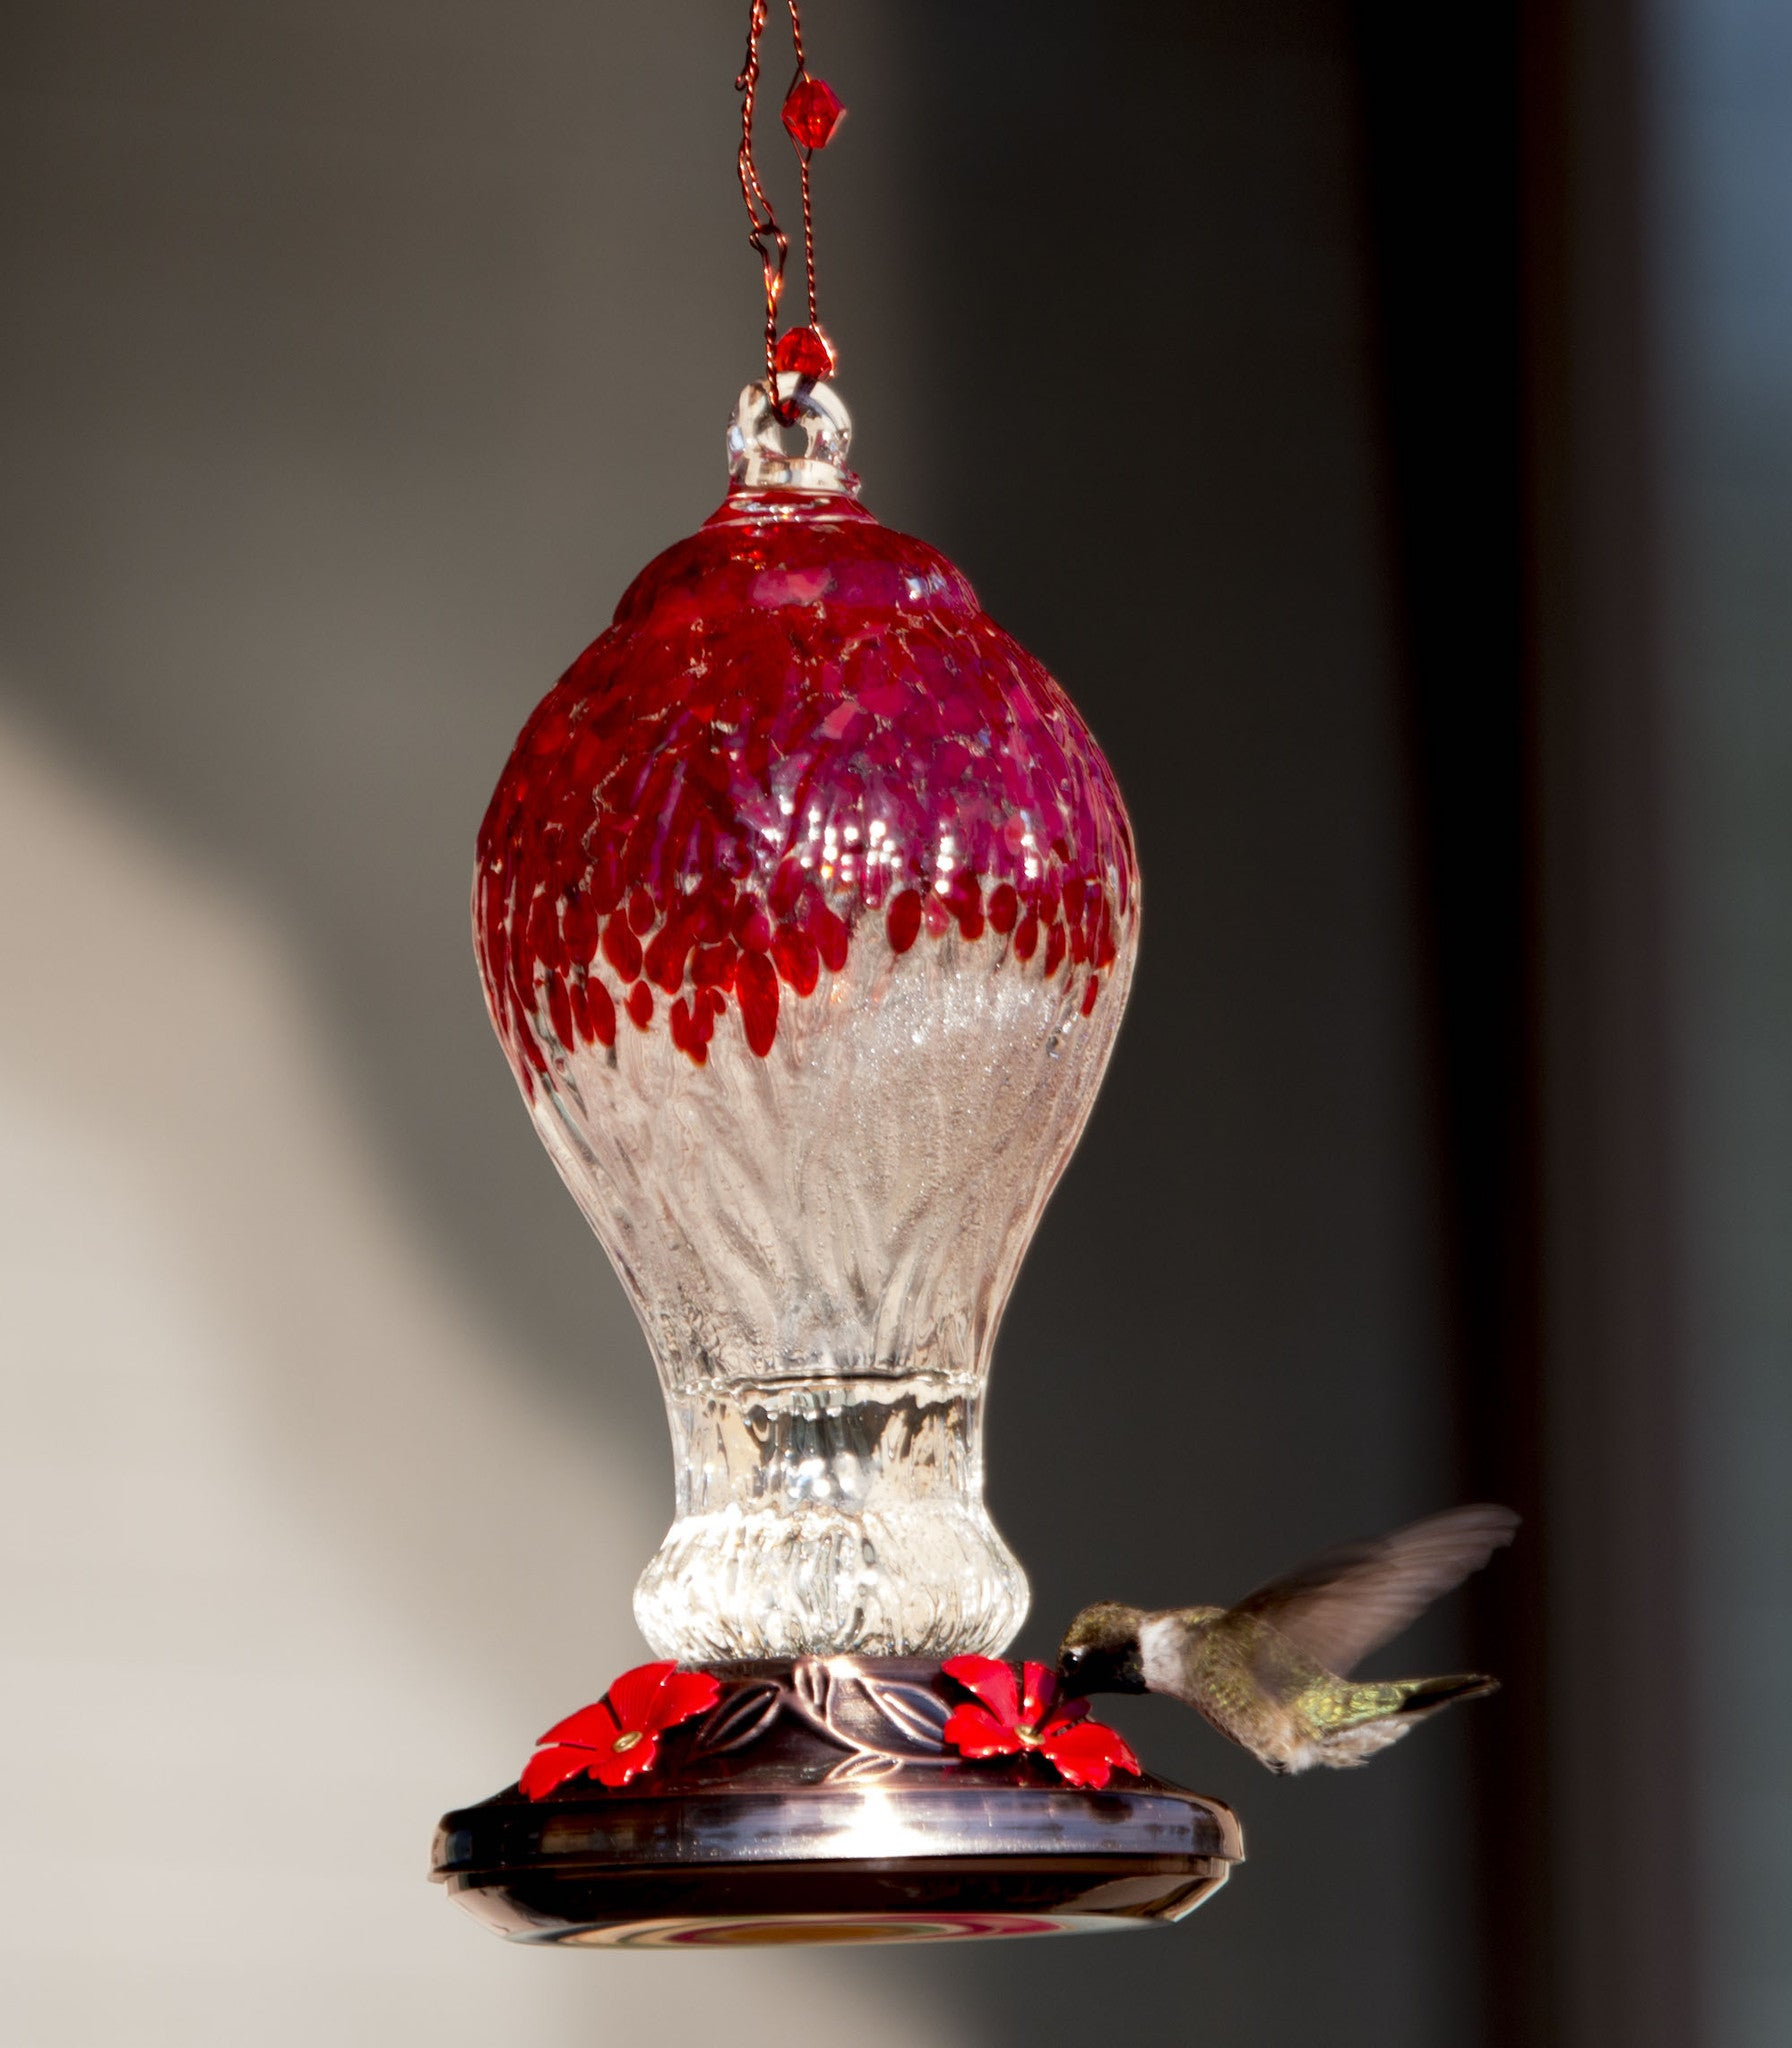 bird com glass squirrel shop wildlife for at display garden sale hummingbird reviews product lowes feeder feeders decor pl outdoors